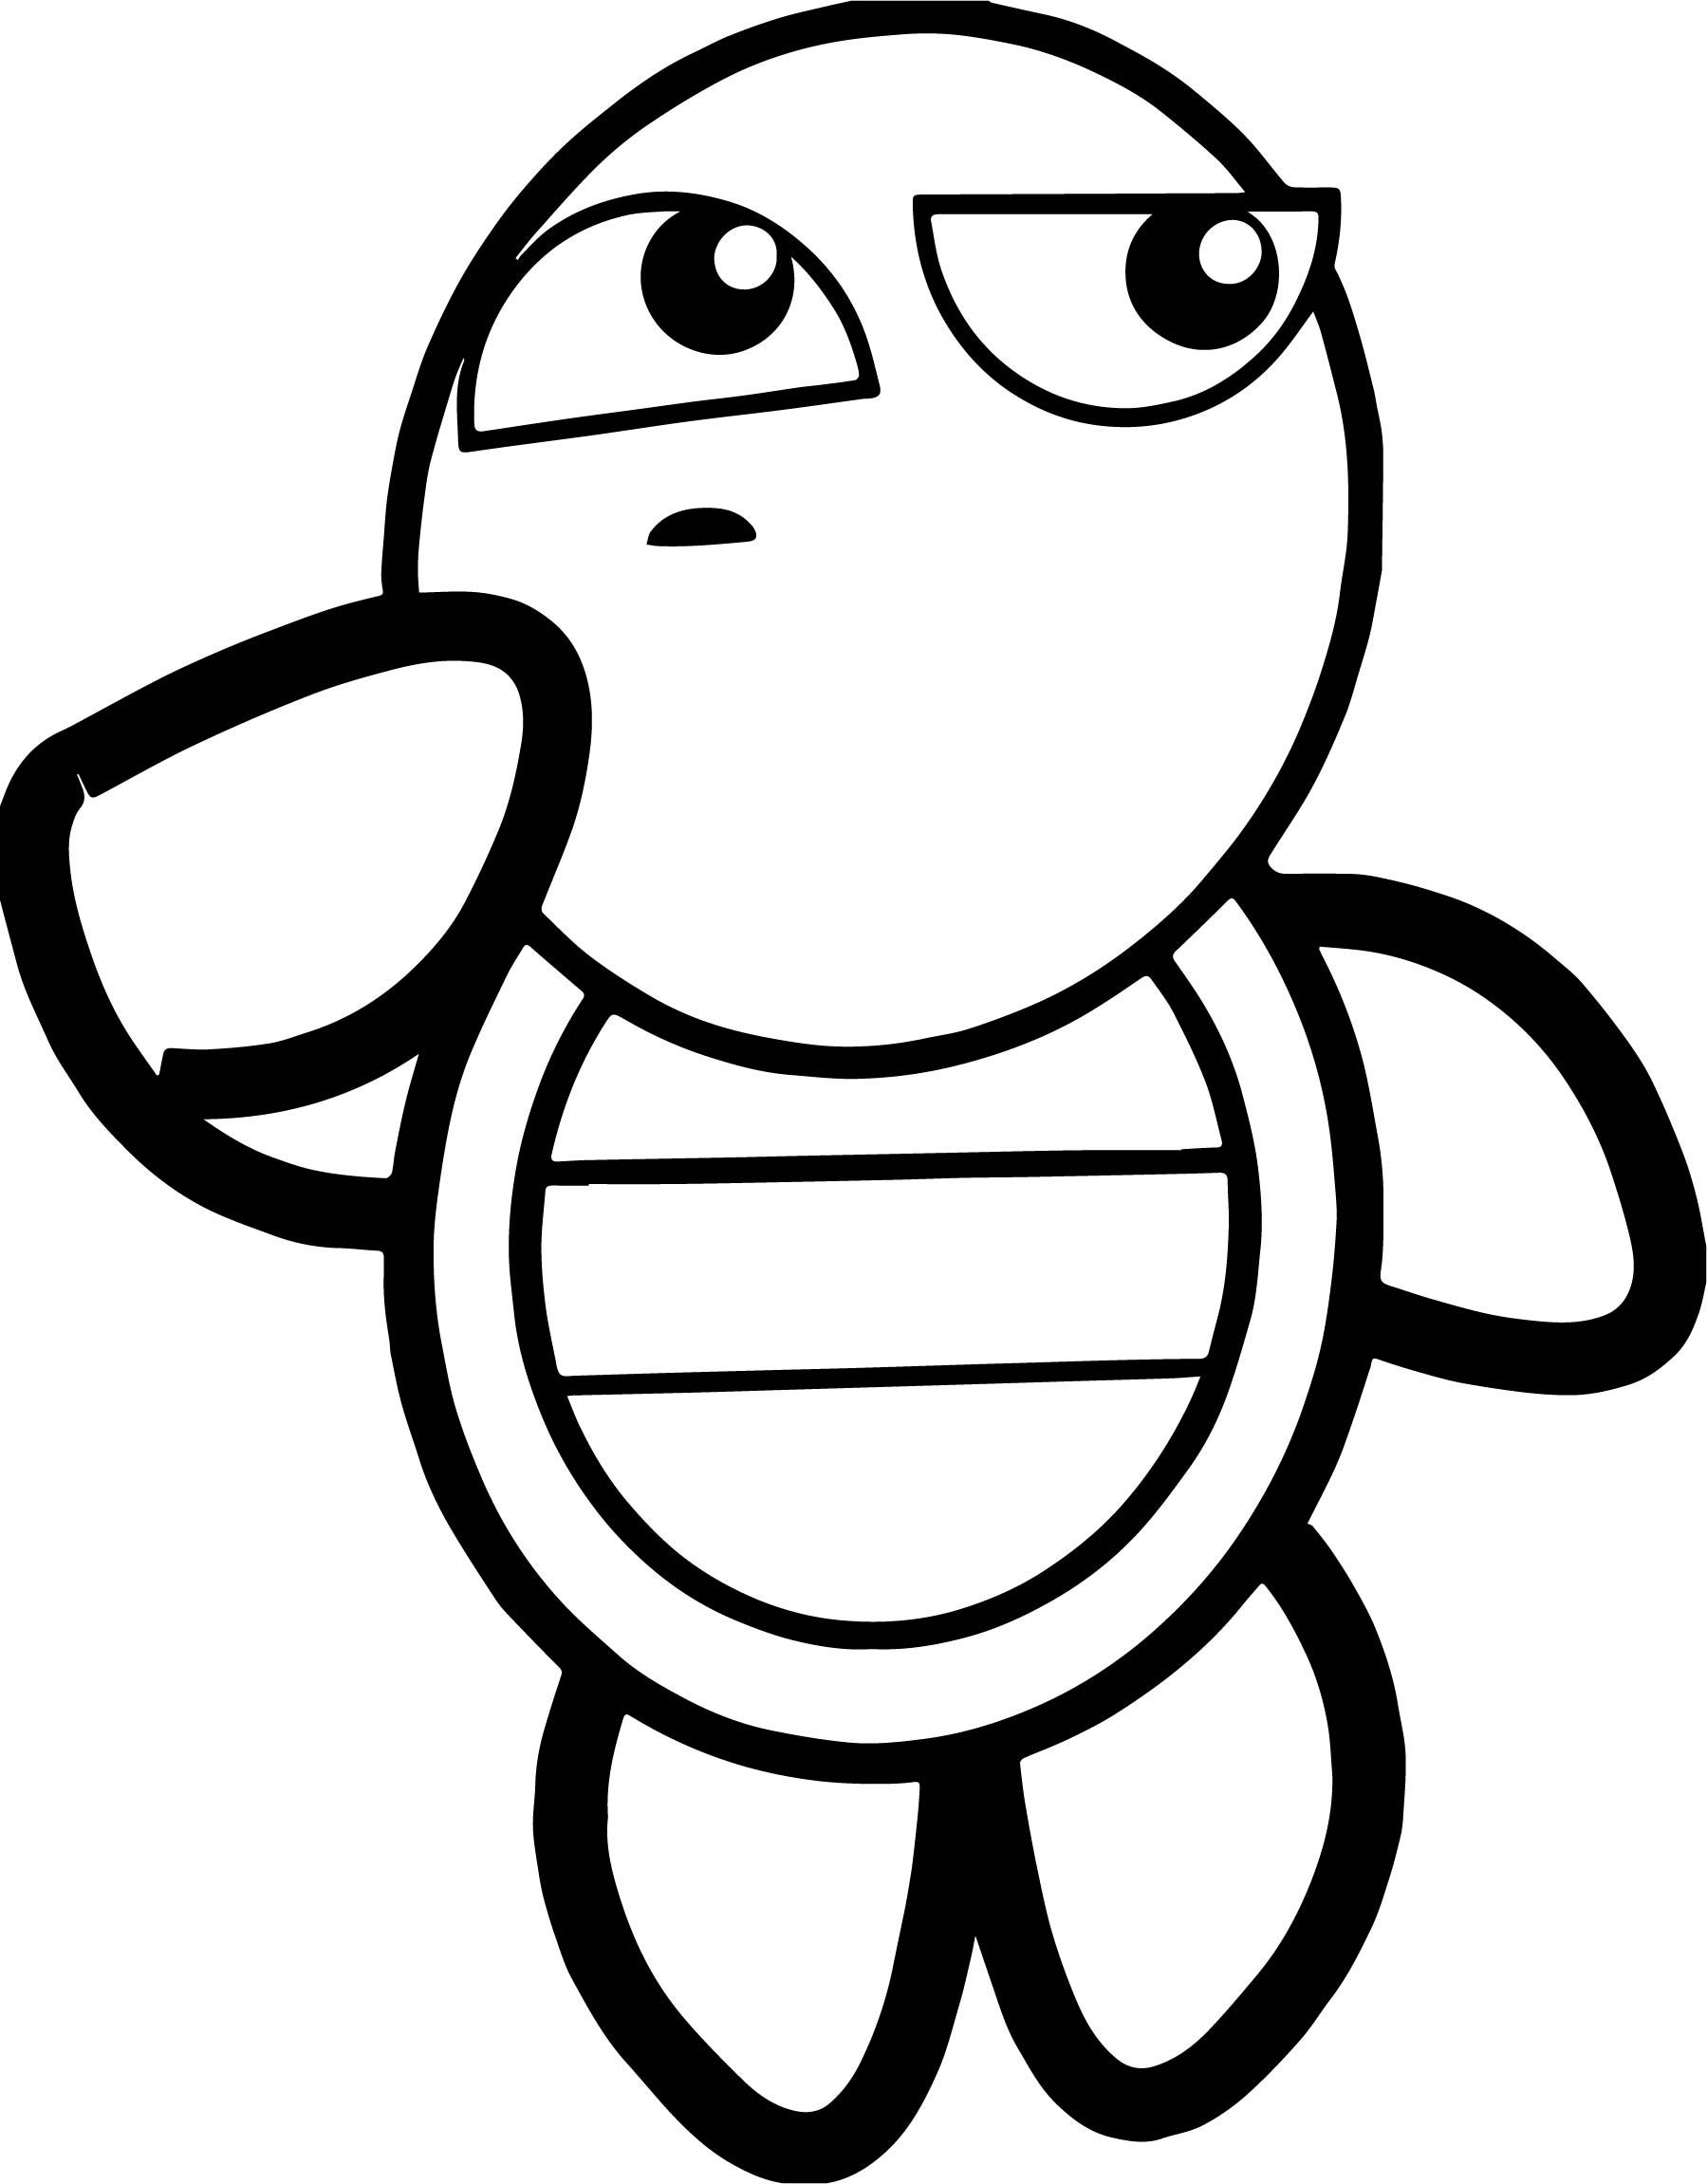 Thinking tortoise turtle coloring page for Turtle coloring pages